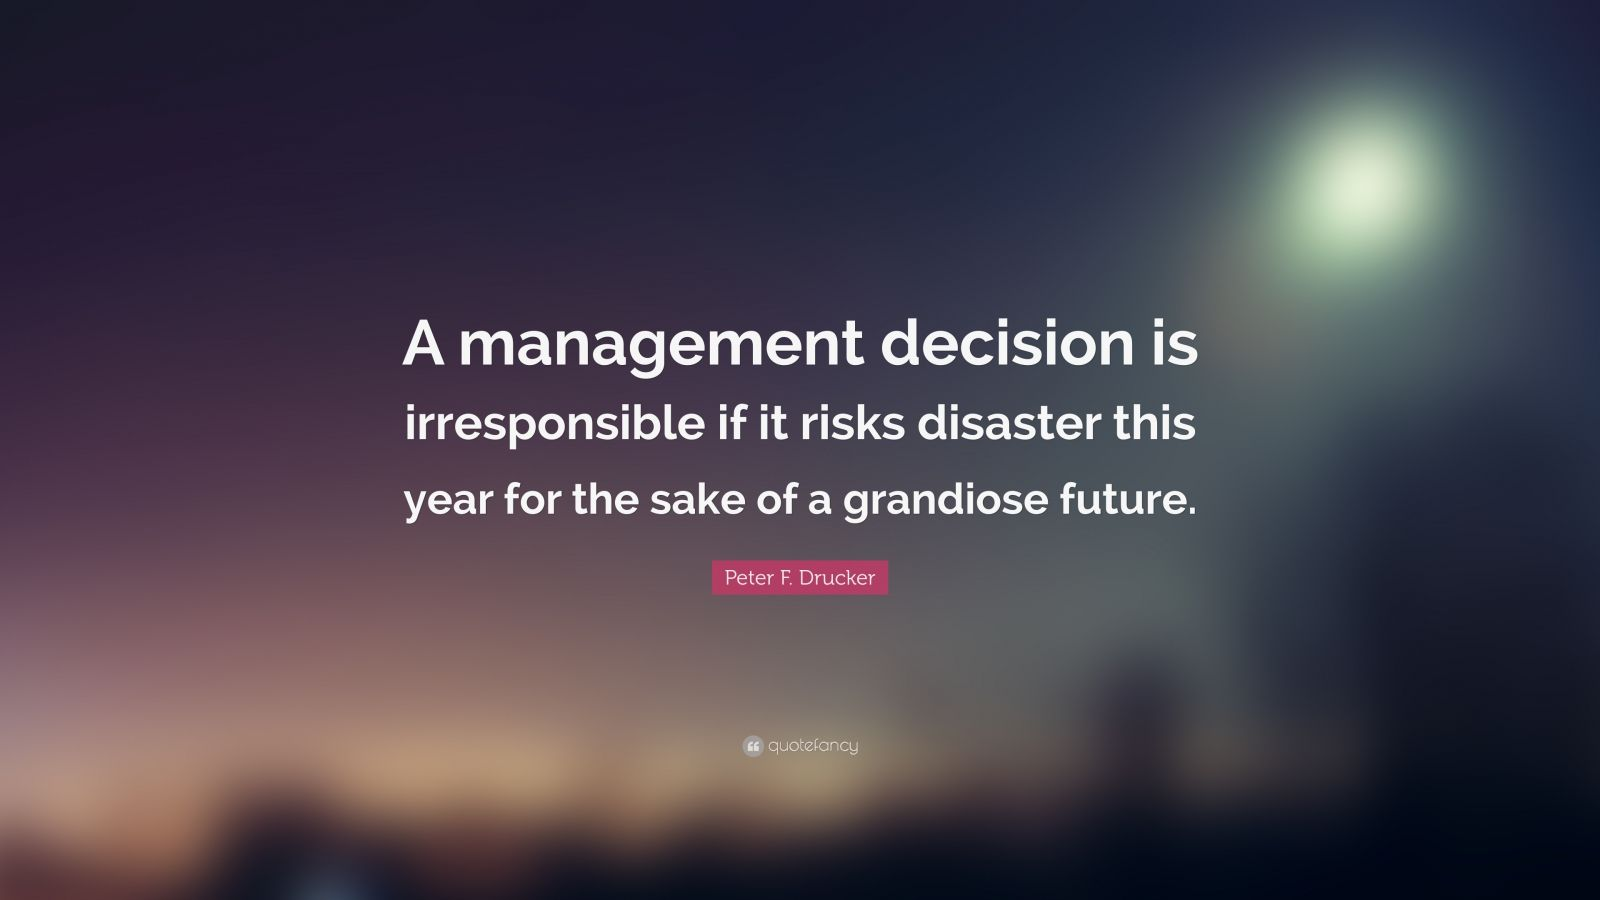 """Peter F. Drucker Quote: """"A management decision is irresponsible if it risks disaster this year for the sake of a grandiose future."""""""